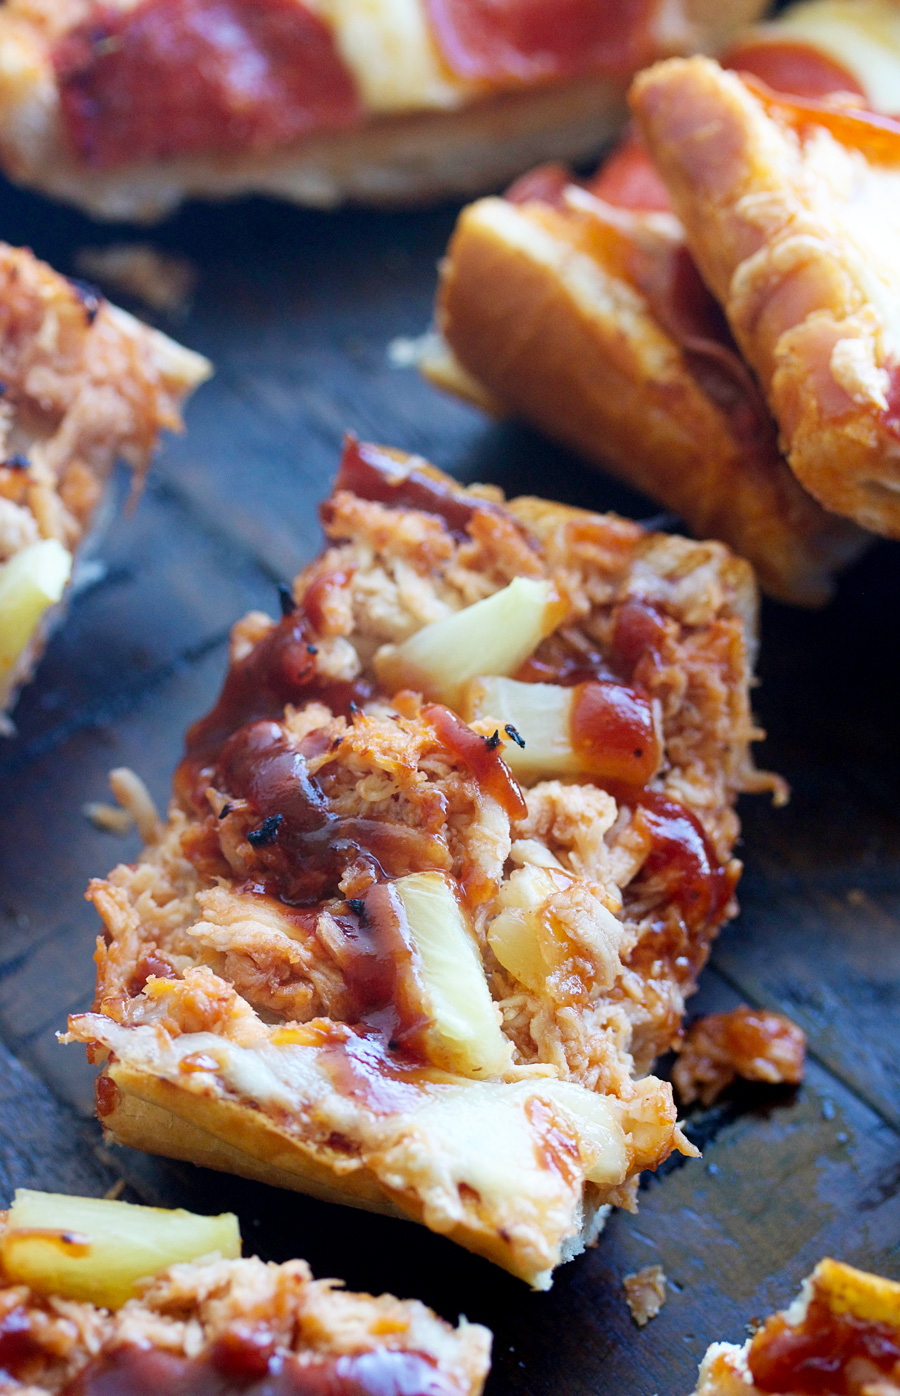 up close shot of a piece of french bread bbq chicken pizza bread